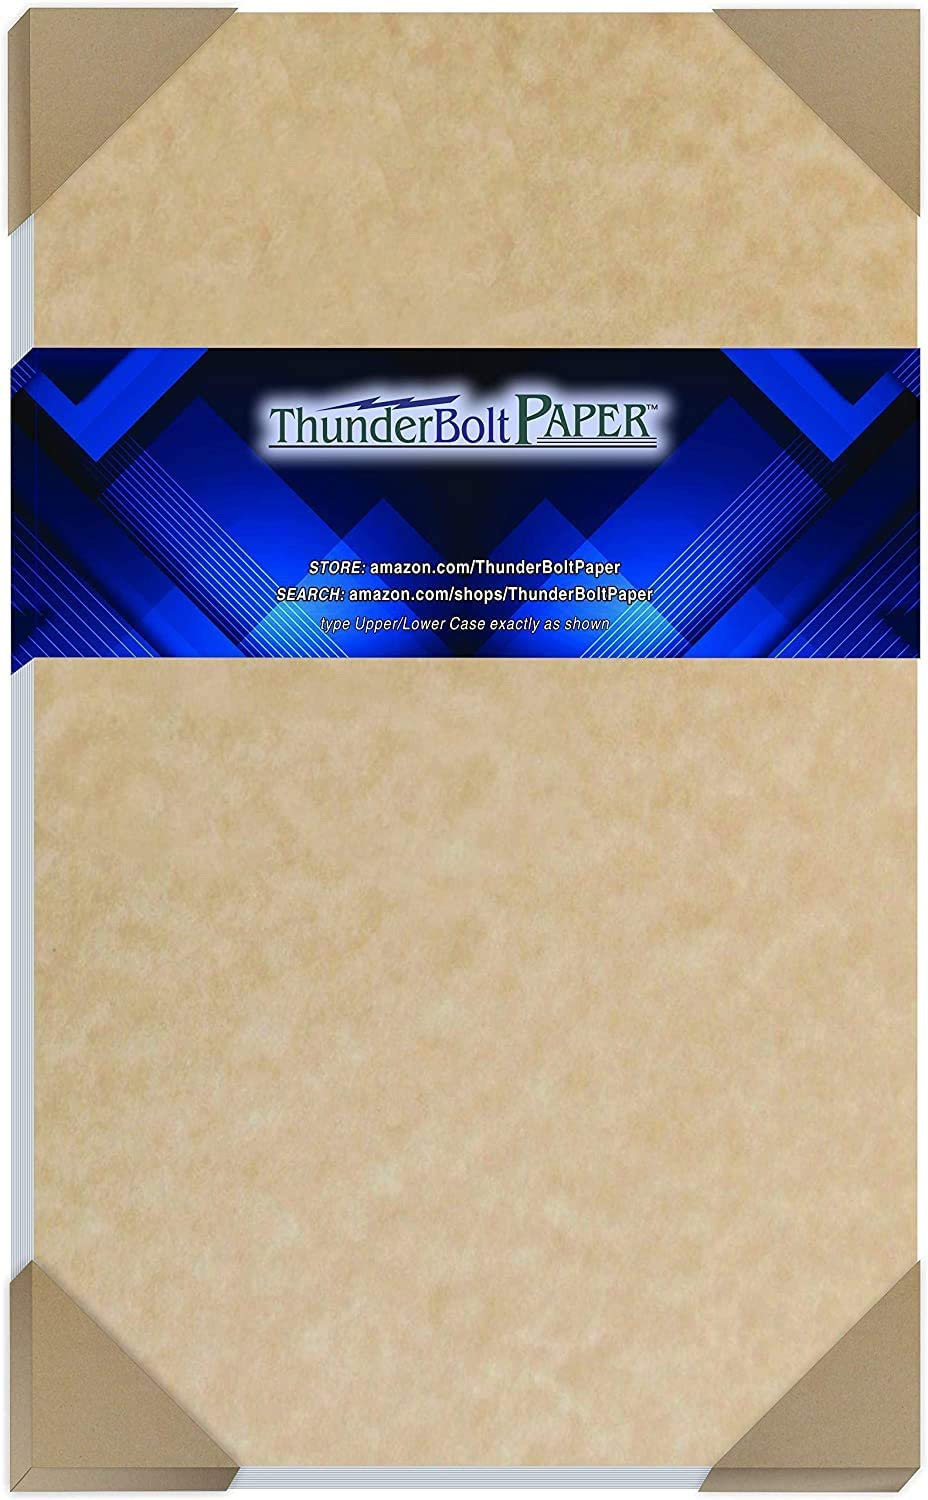 50 Sandy Brown Parchment 65lb Cover Weight Paper 8.5 X 14 Inches Cardstock Colored Sheets Legal Size -Printable Old Parchment Semblance